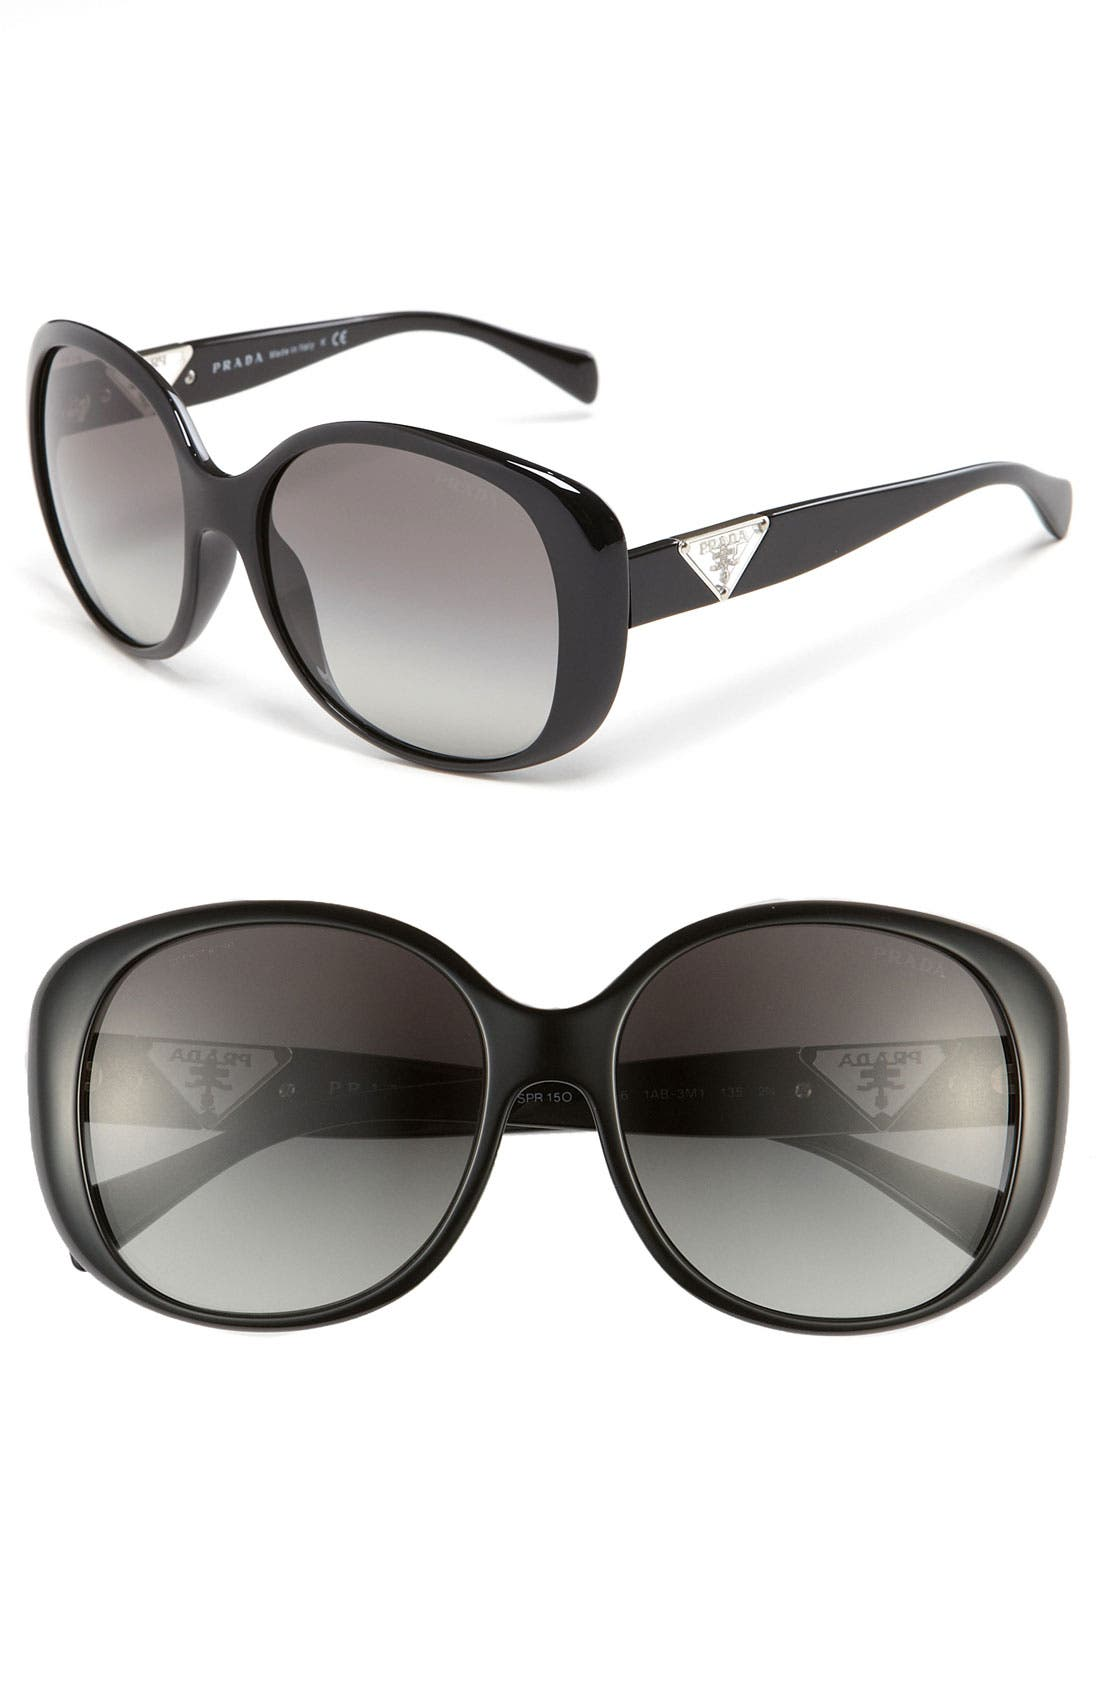 Alternate Image 1 Selected - Prada 56mm Oversized Sunglasses